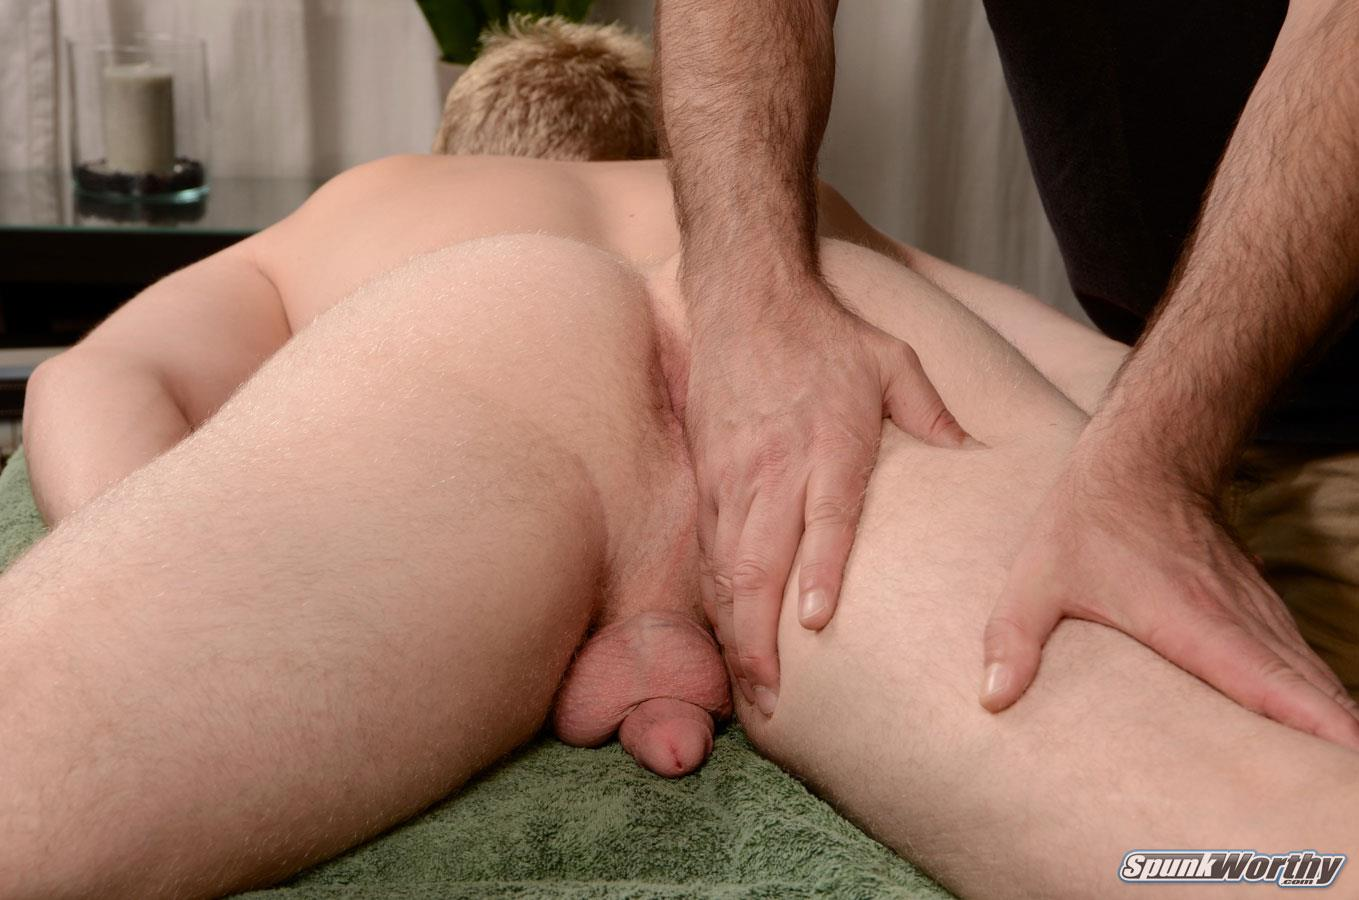 Another hot cock suck by darby that has not been on any site